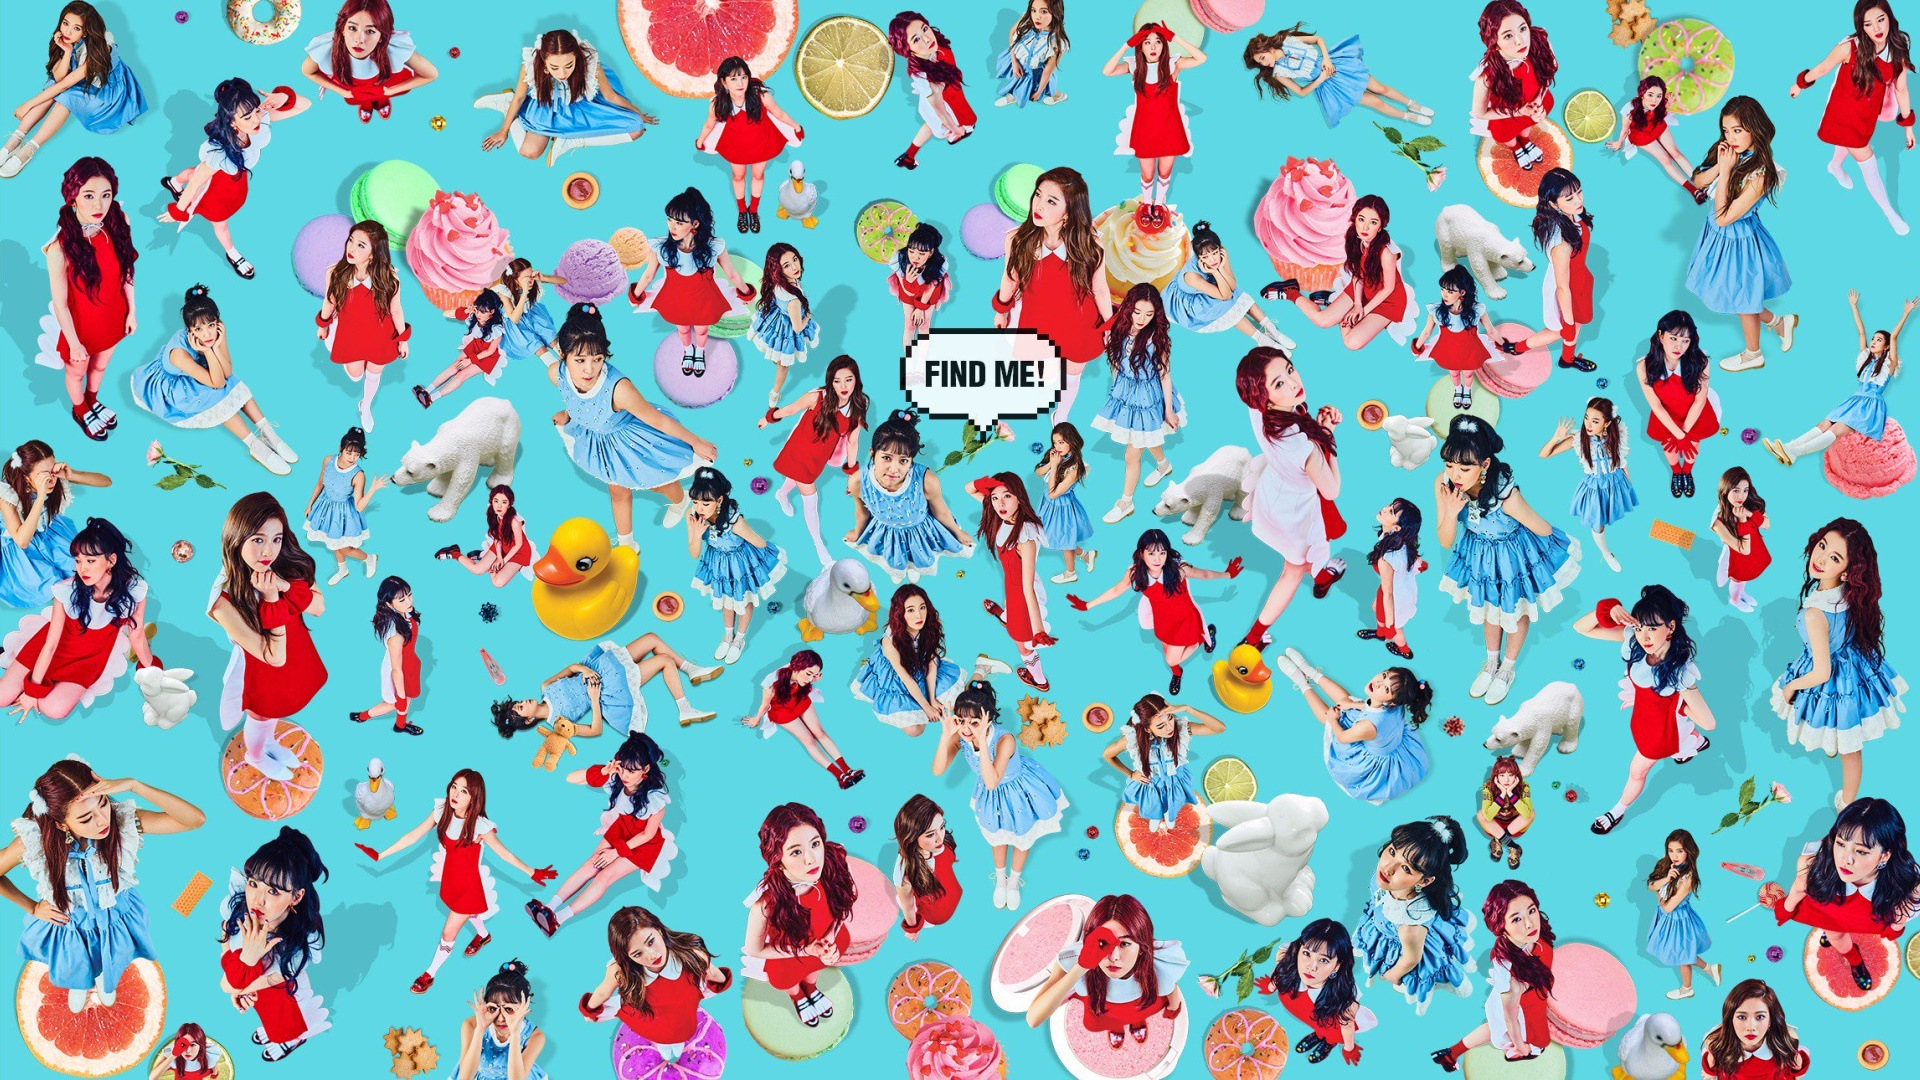 Red Velvet Download Image